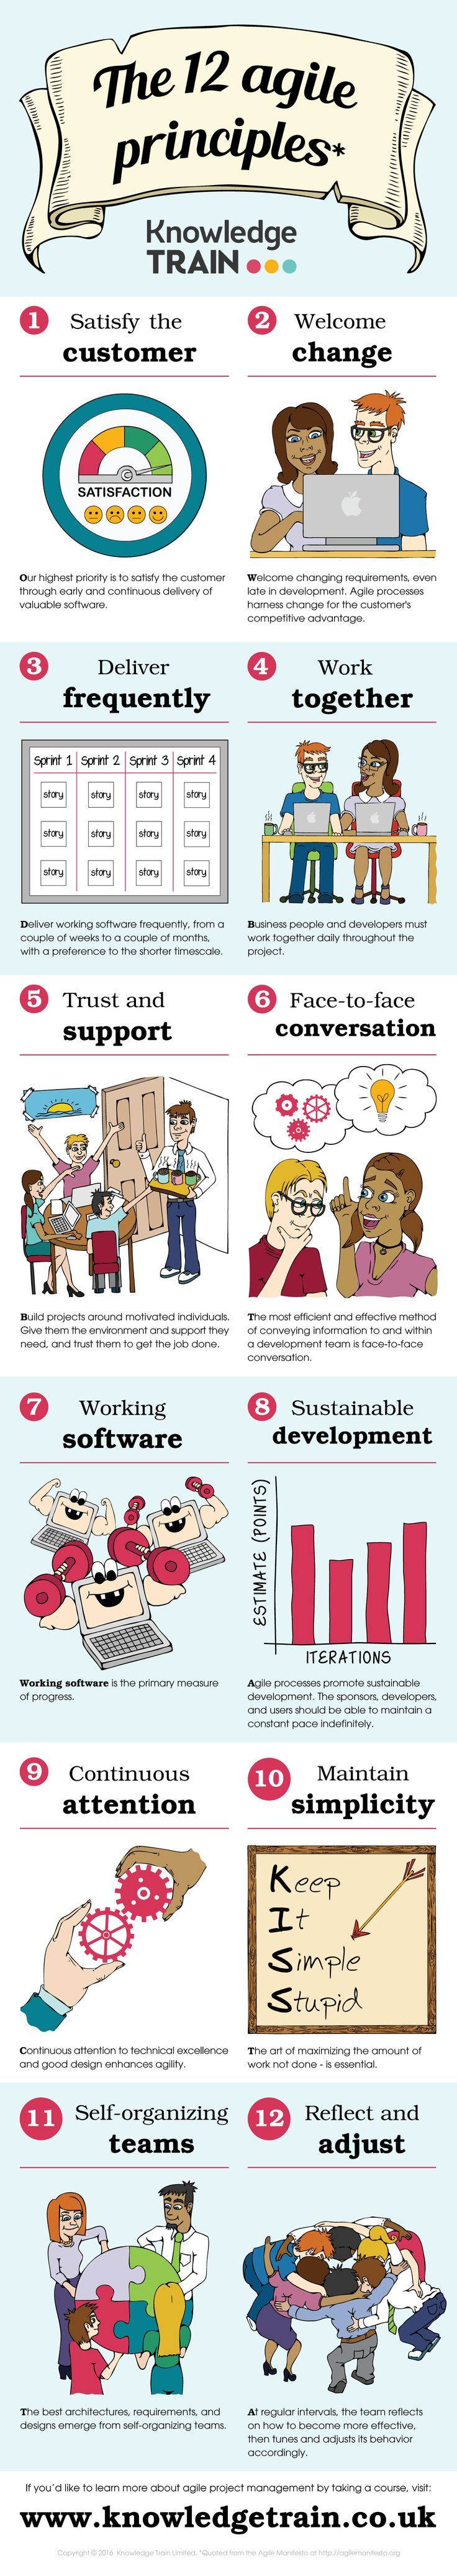 243 best project images on pinterest knowledge life coaching 12 principles for agile project management in beautifully simple text and graphics xflitez Image collections